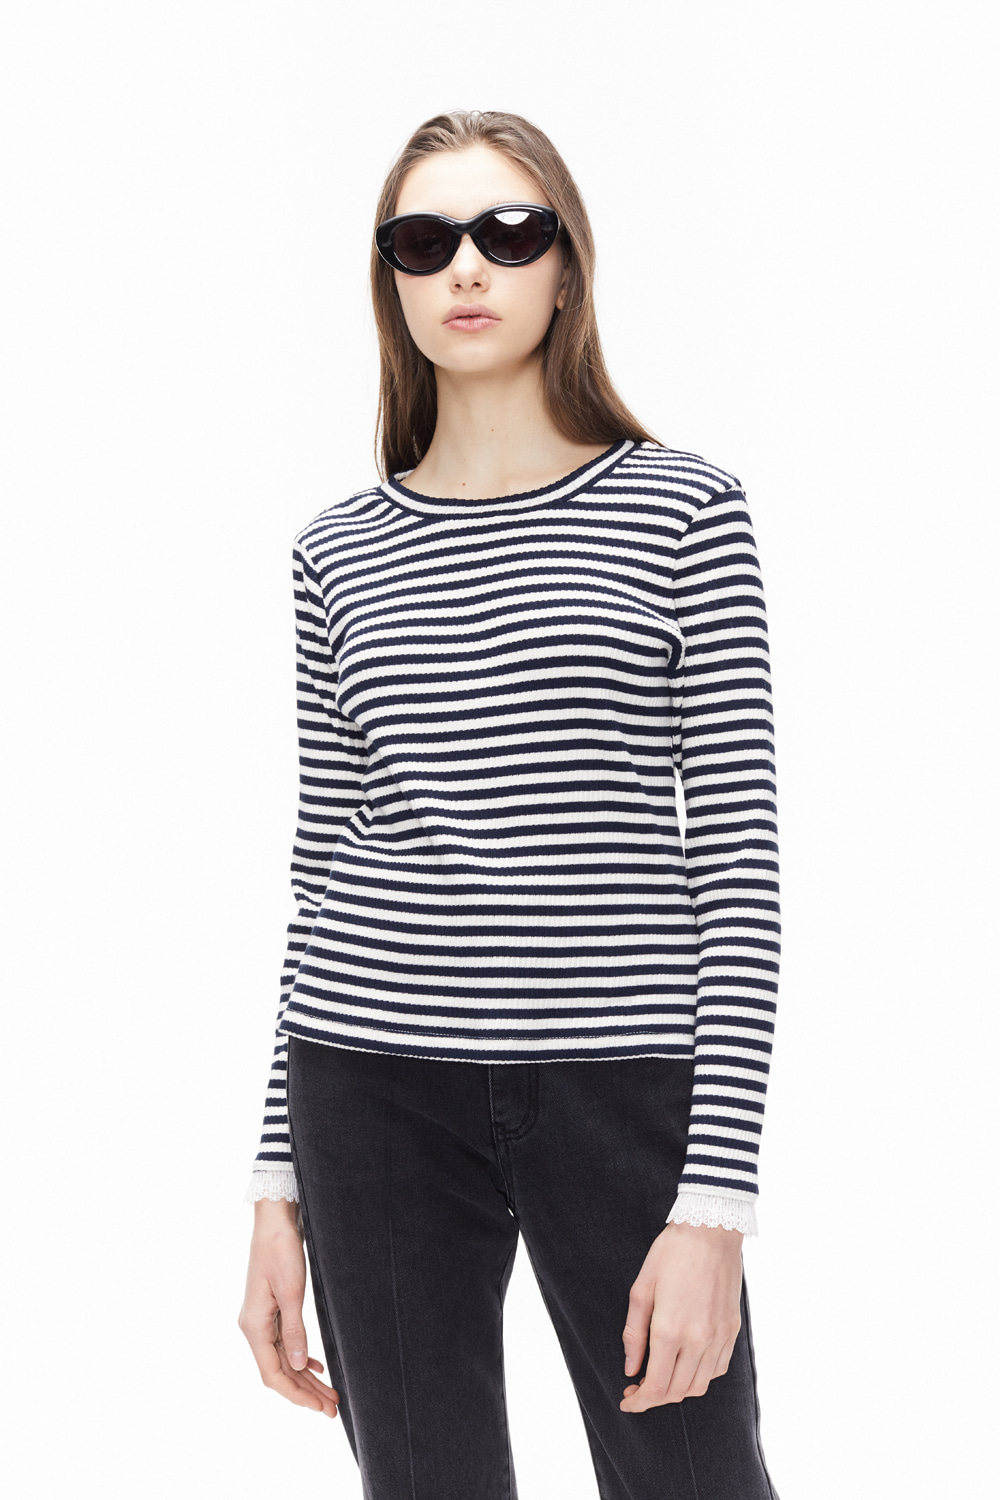 ORDINARY PEOPLE FRILL SLEEVE POINT BLACK STRIPE T-SHIRTS